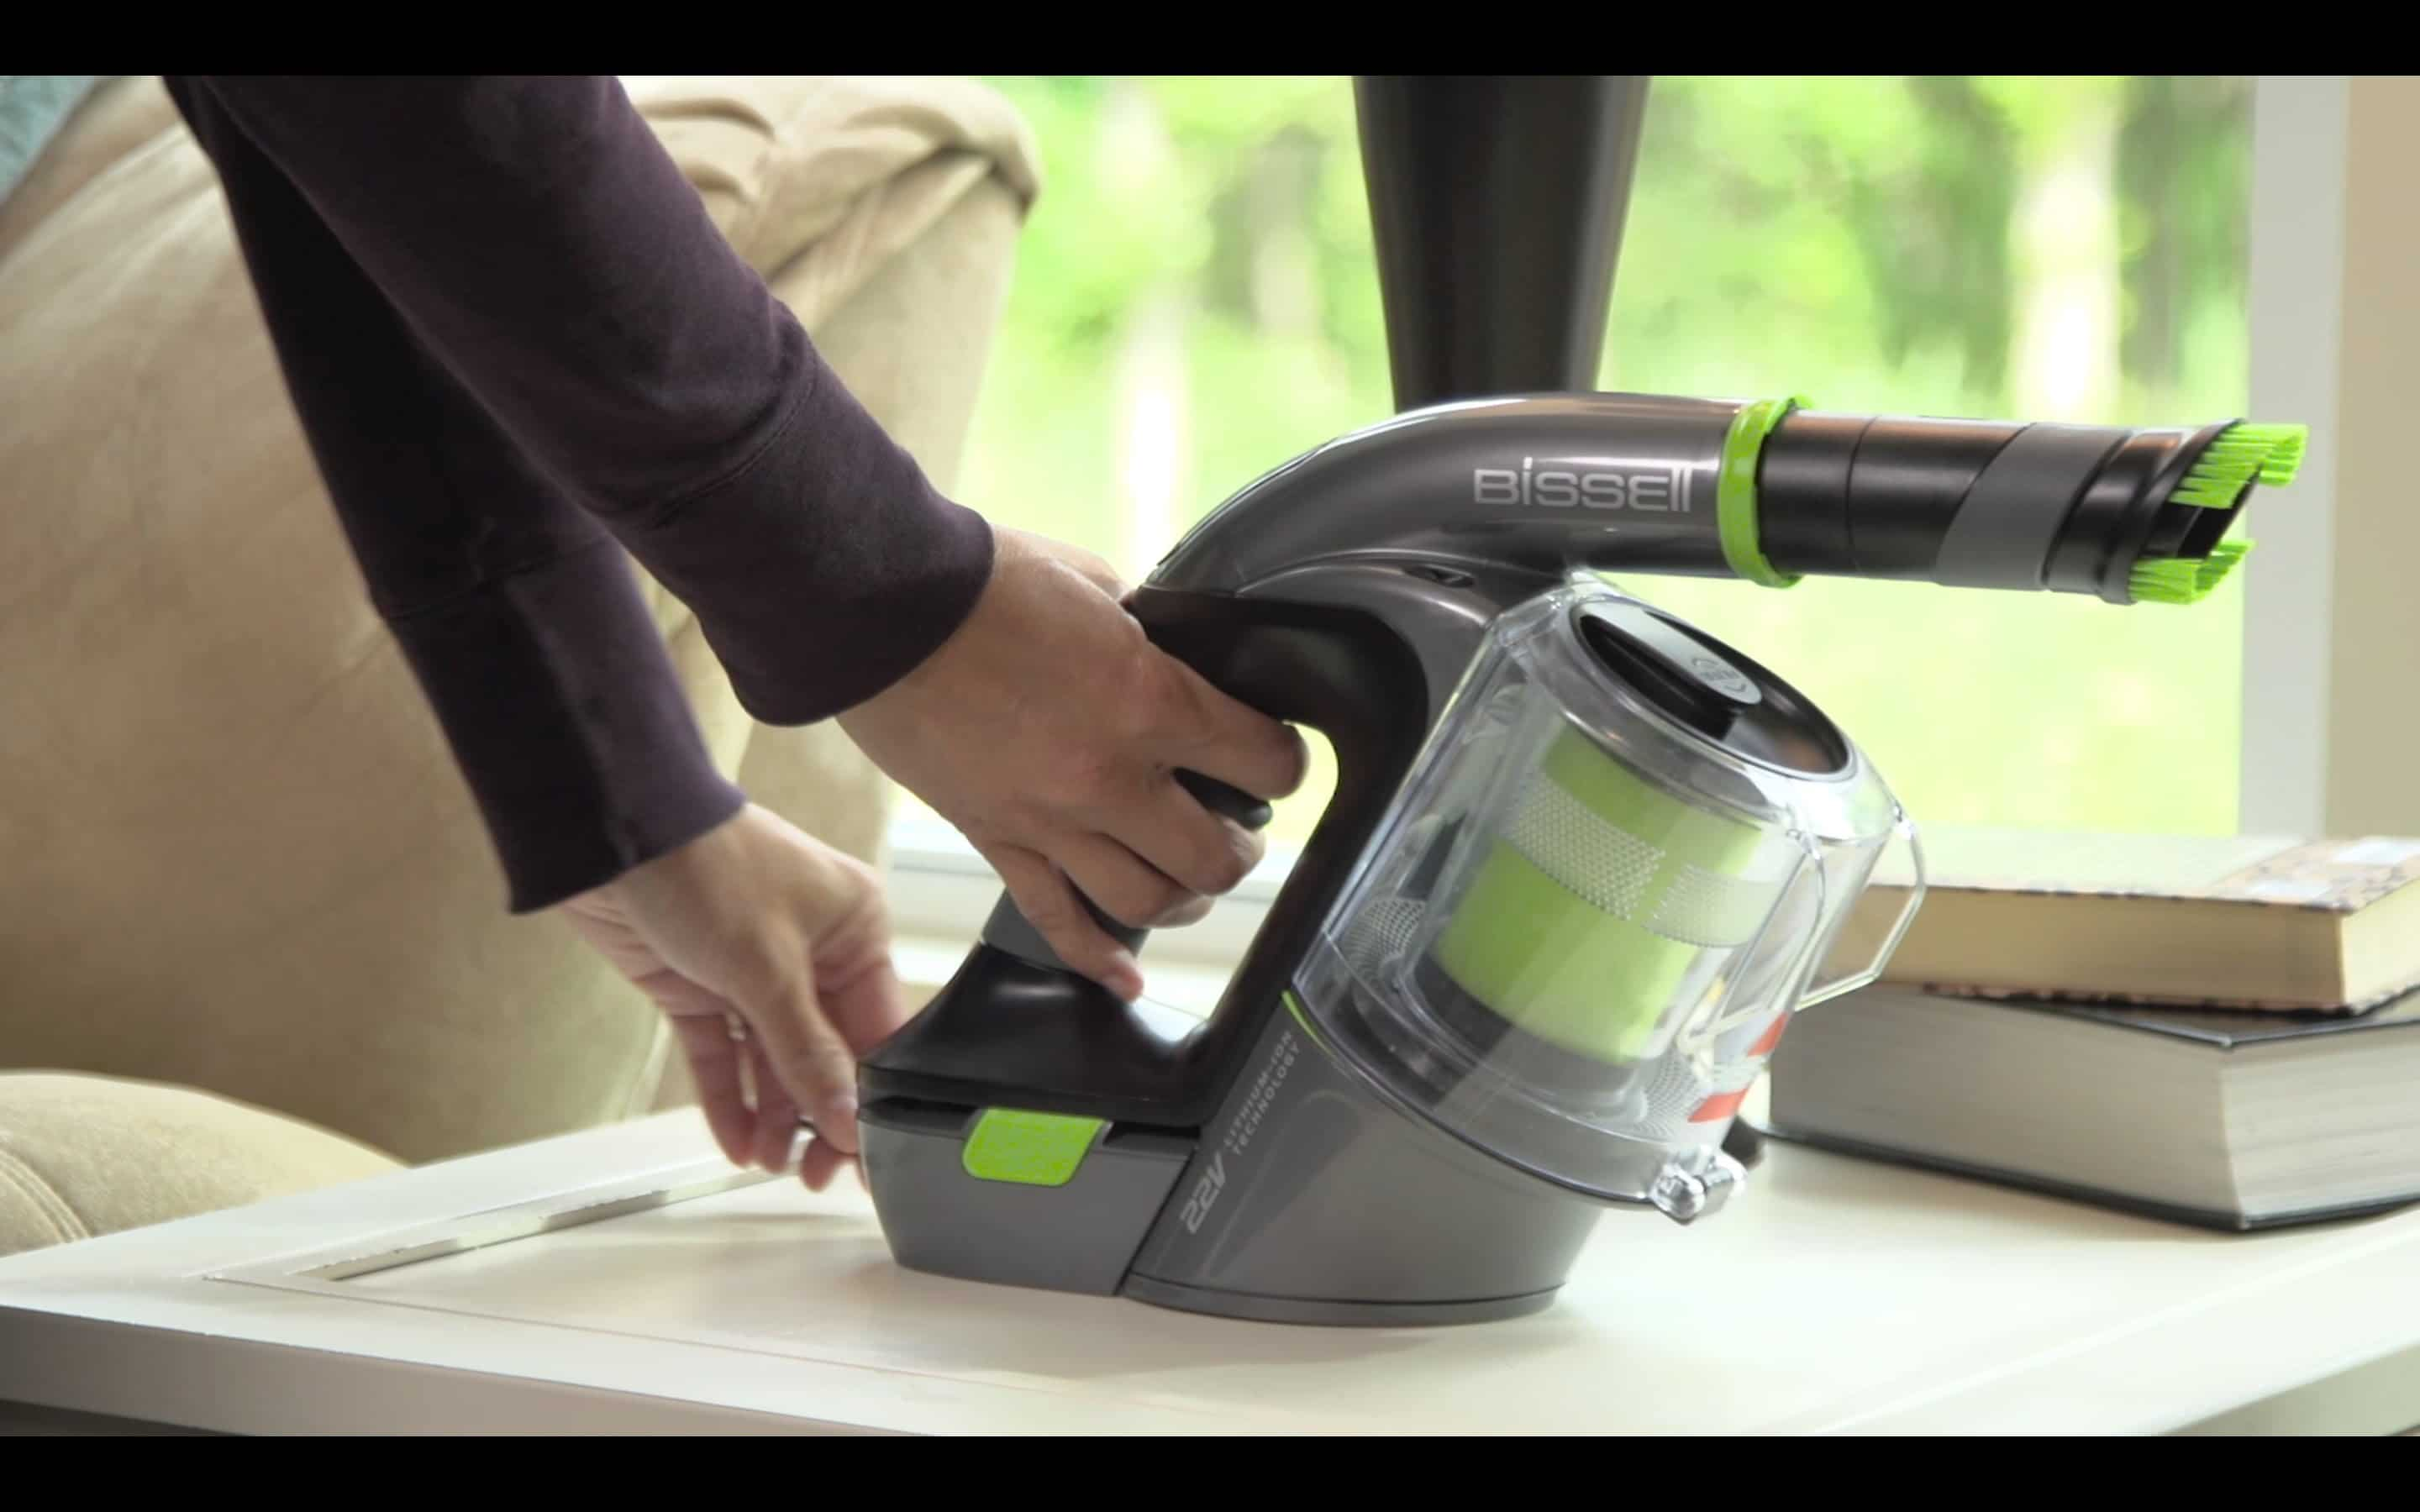 BISSELL Lightweight Cordless Hand Vacuum and Car Vacuum 俗稱小綠(小綠吸塵器)